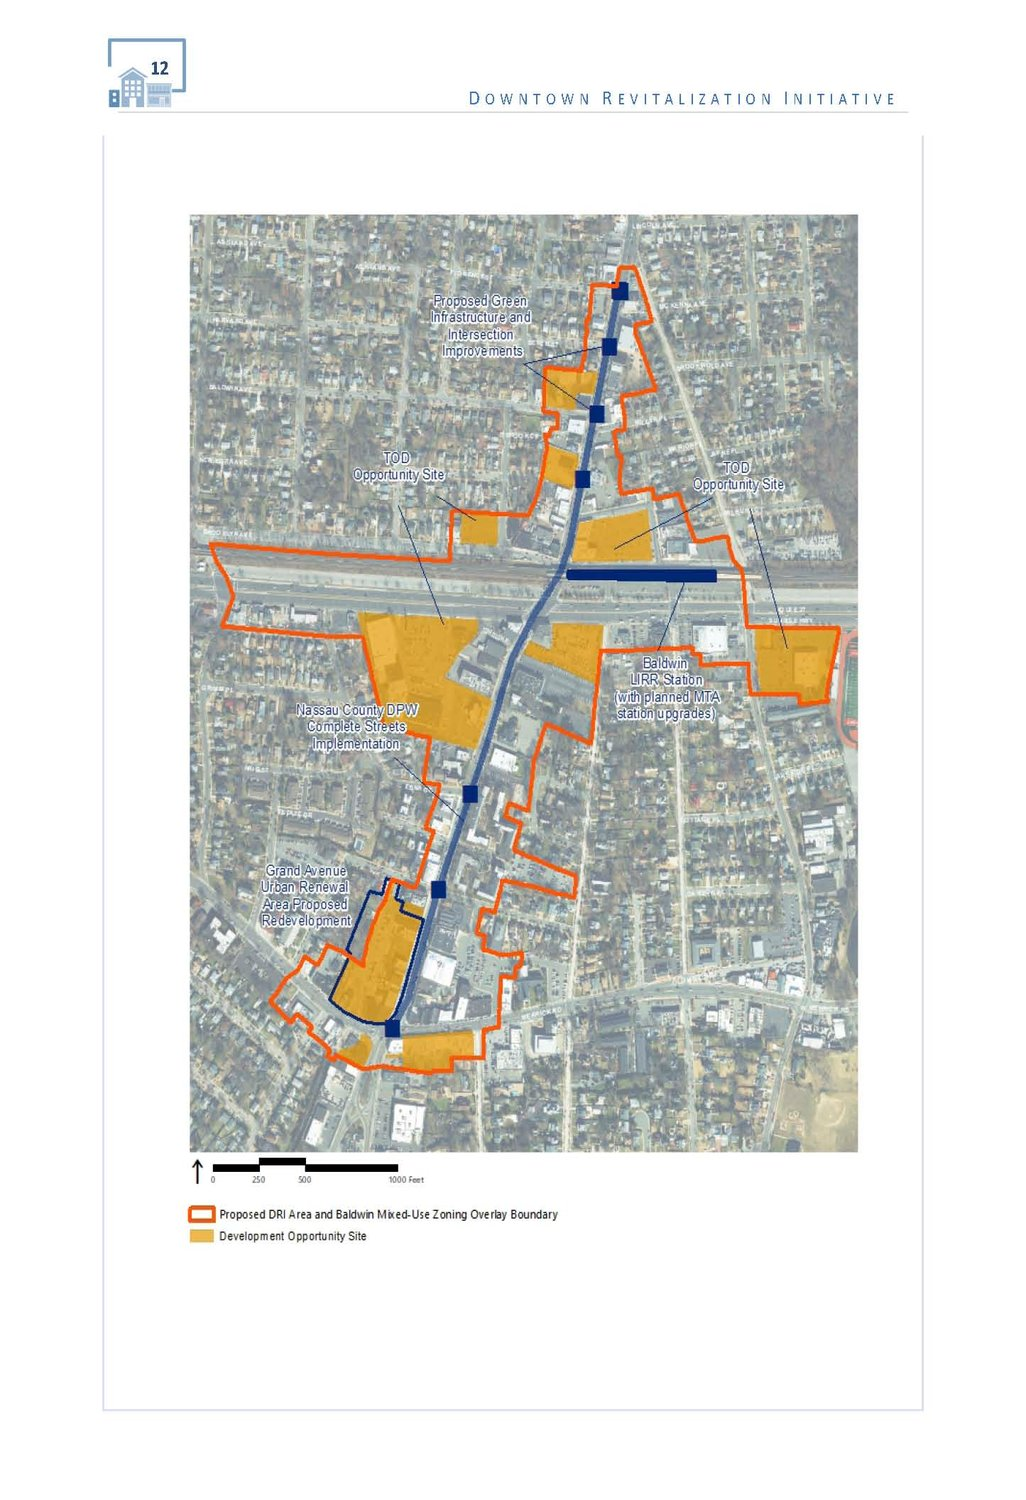 Planners said the boundary of the Downtown Revitalization Initiative runs along Grand Avenue, from Merrick Road to Stowe Avenue.